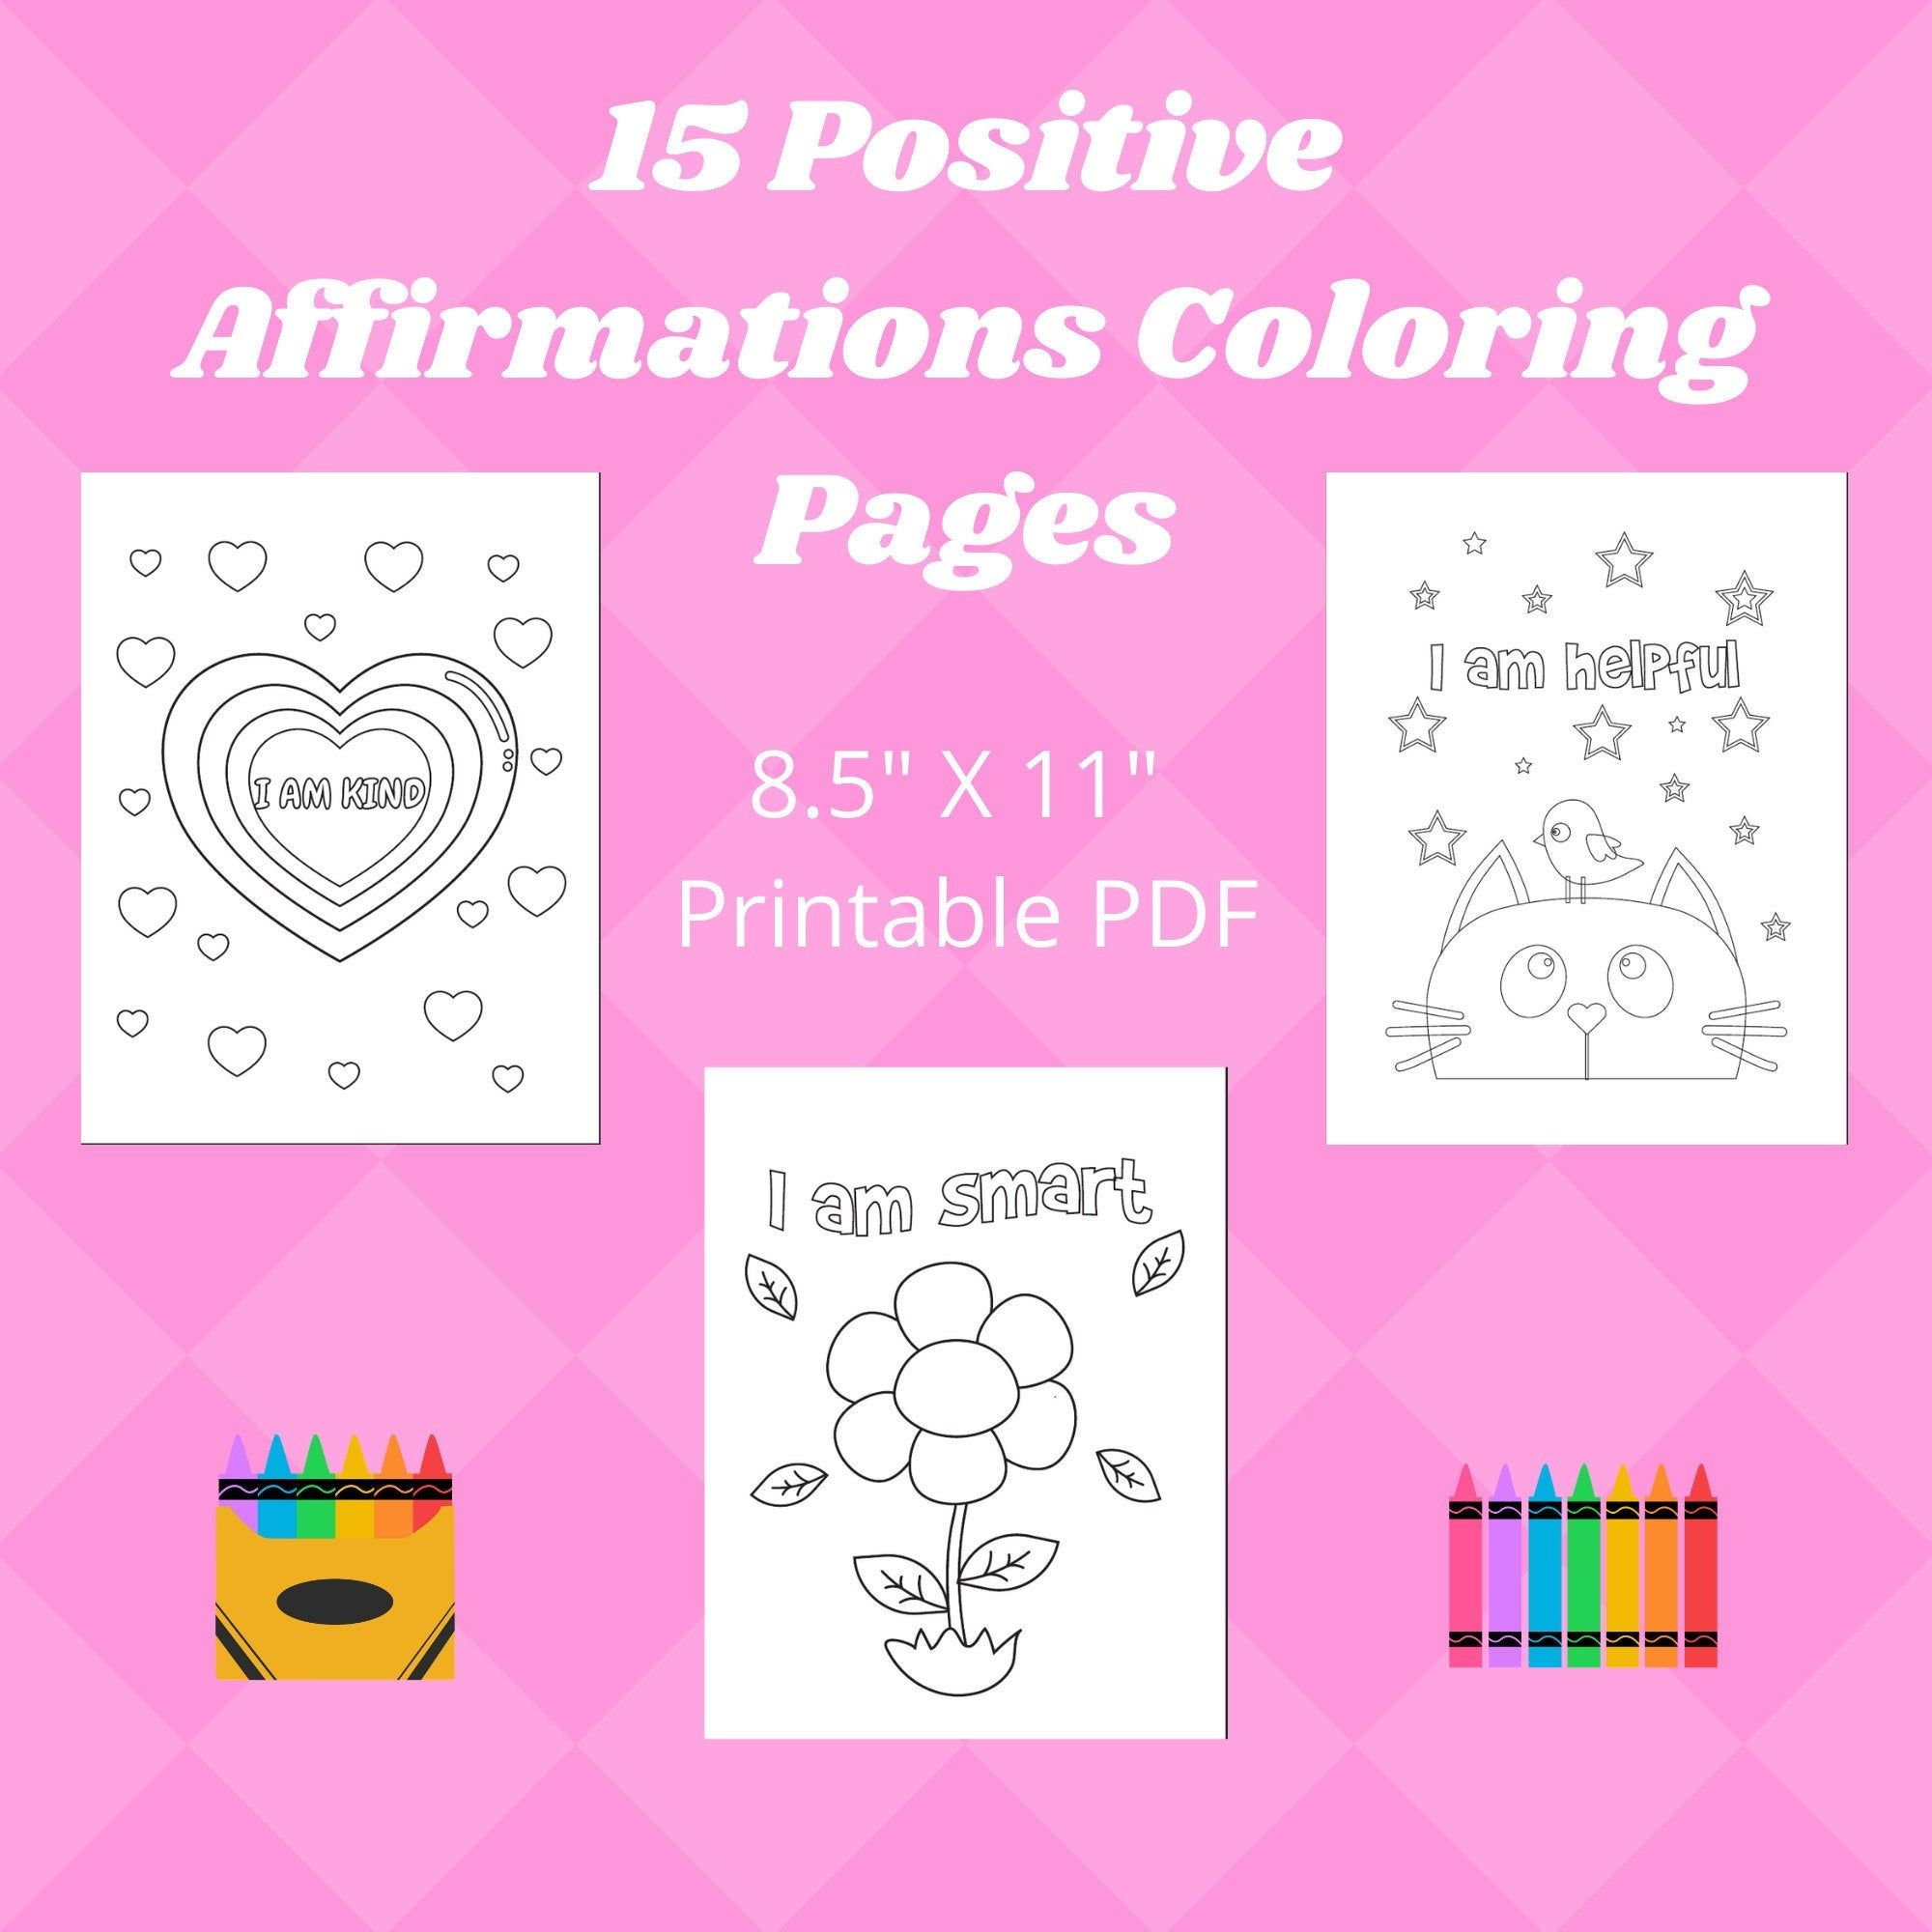 15 Positive Affirmations Coloring Pages